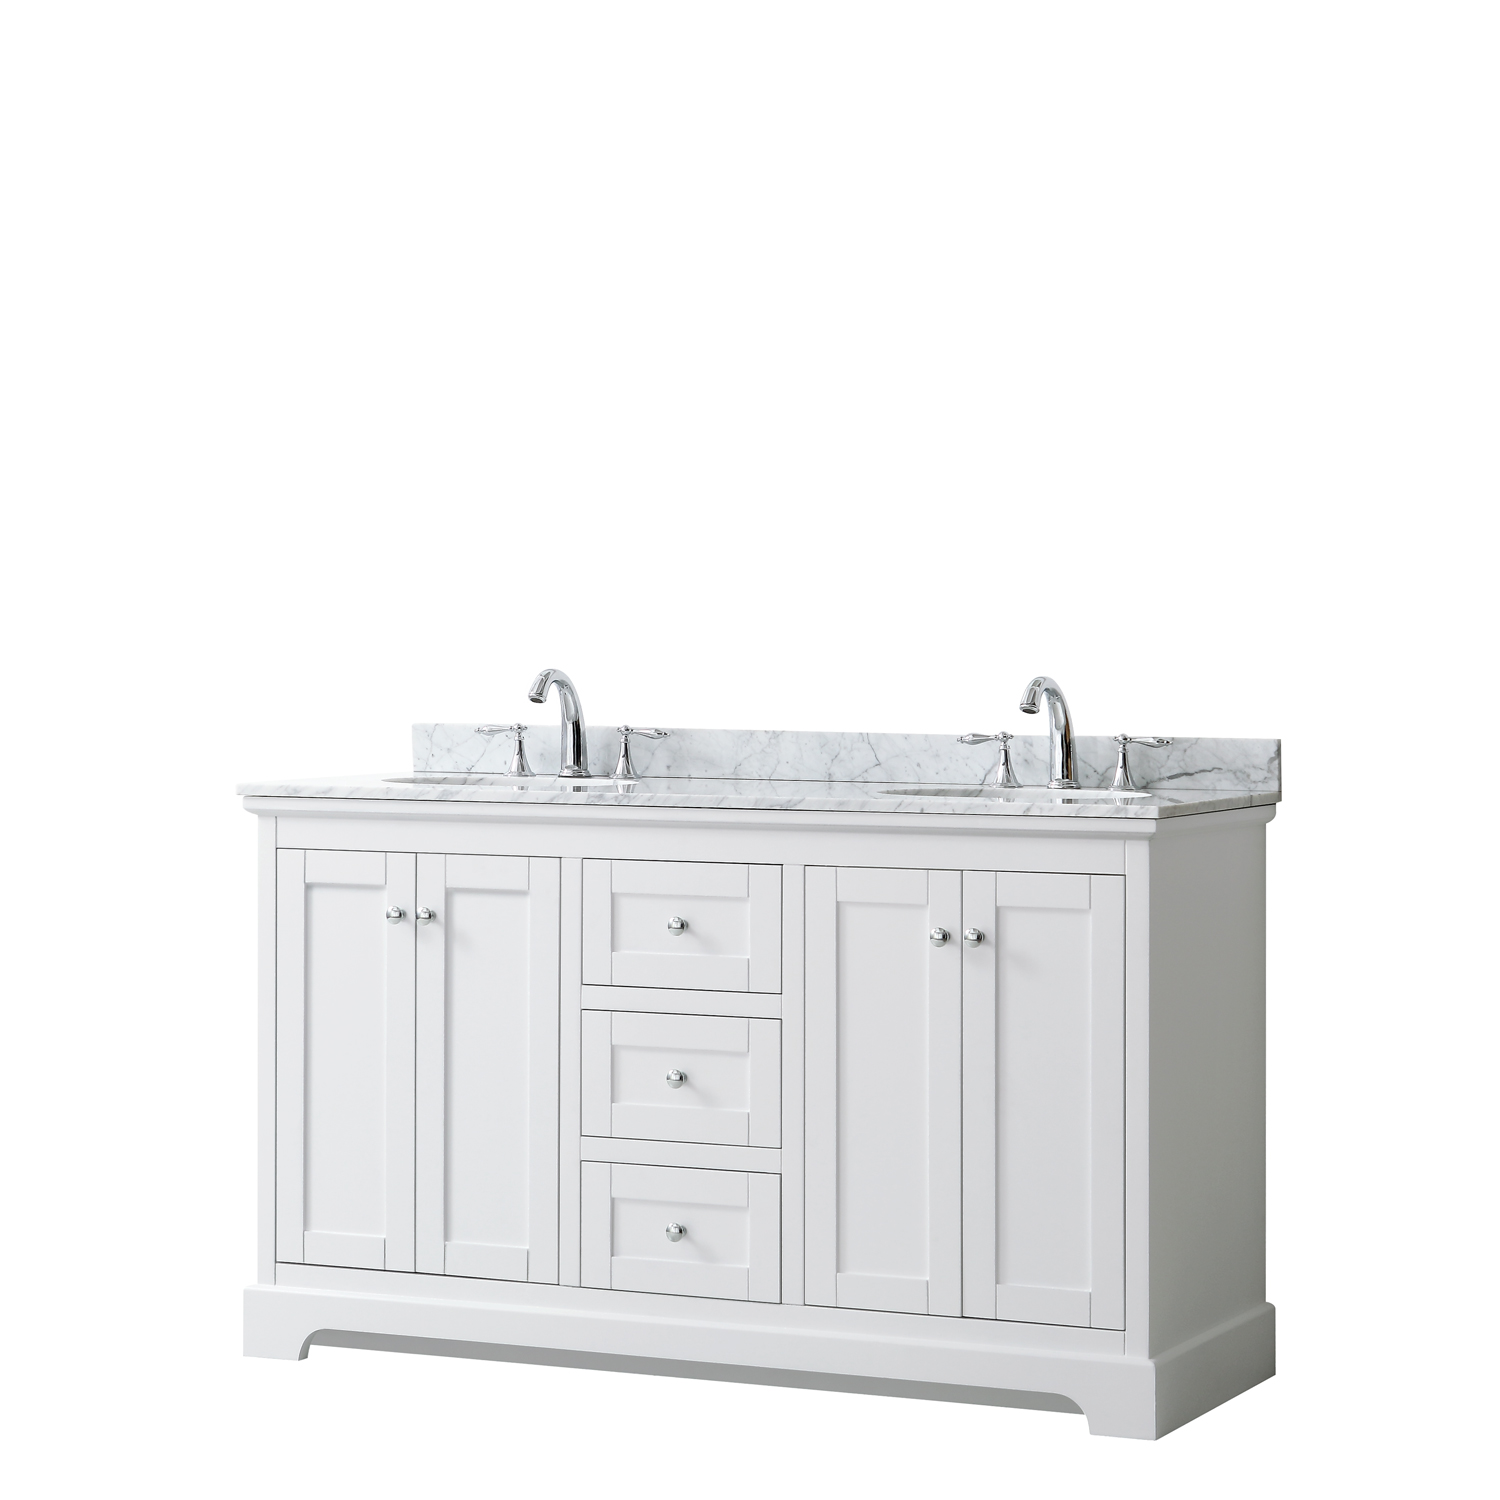 "60"" Double Bathroom Vanity in White, No Countertop, No Sinks, and No Mirror"